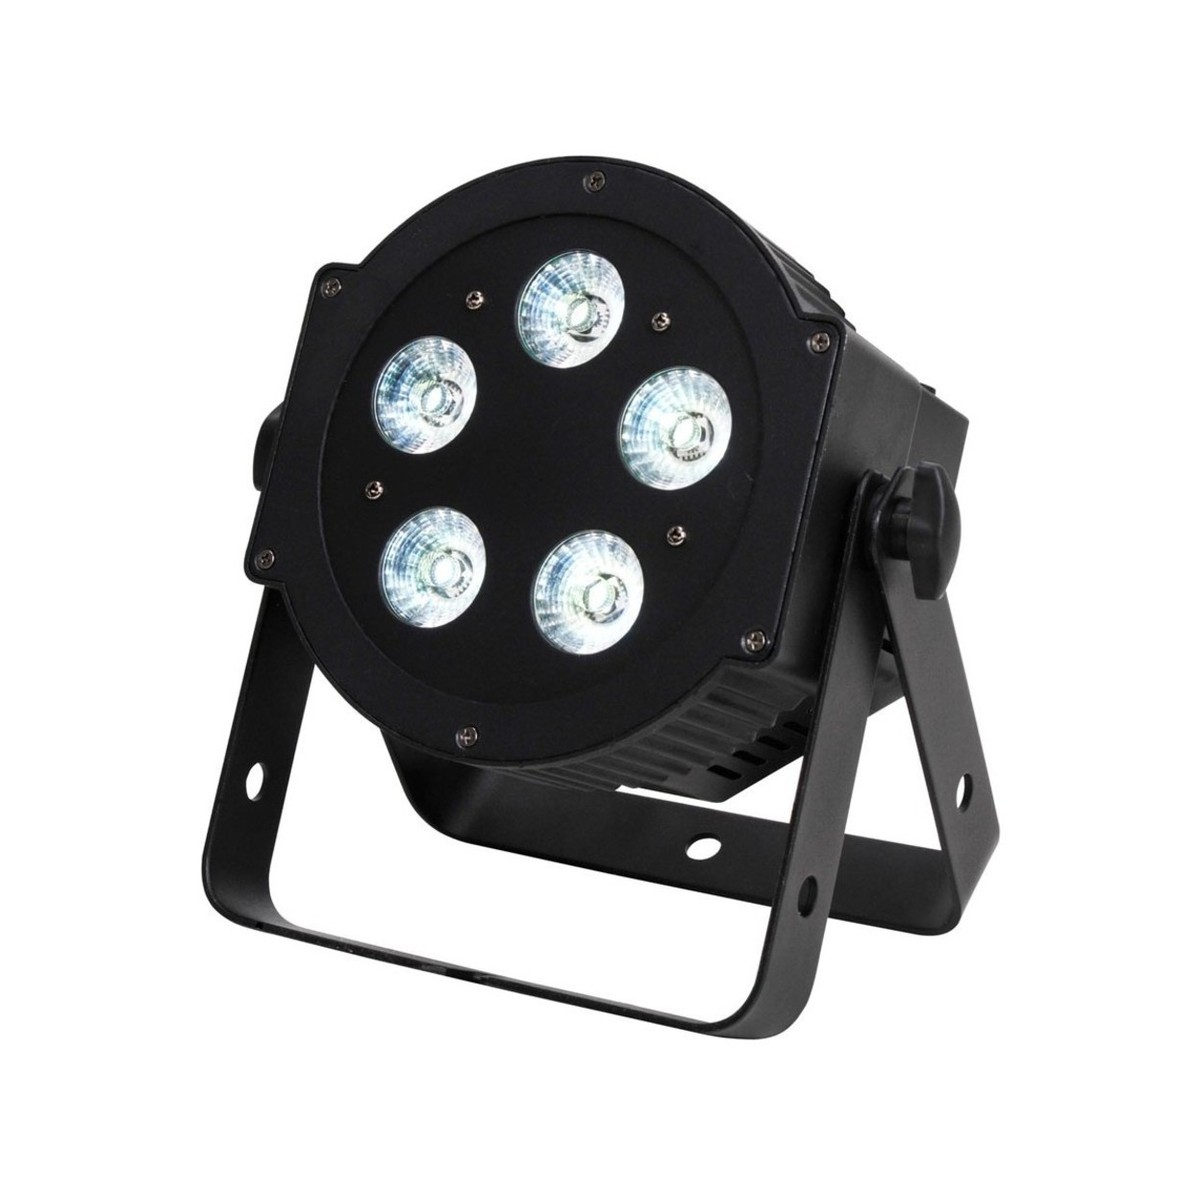 adj 5p hex led par can 4 pack with bag and cables at gear4music